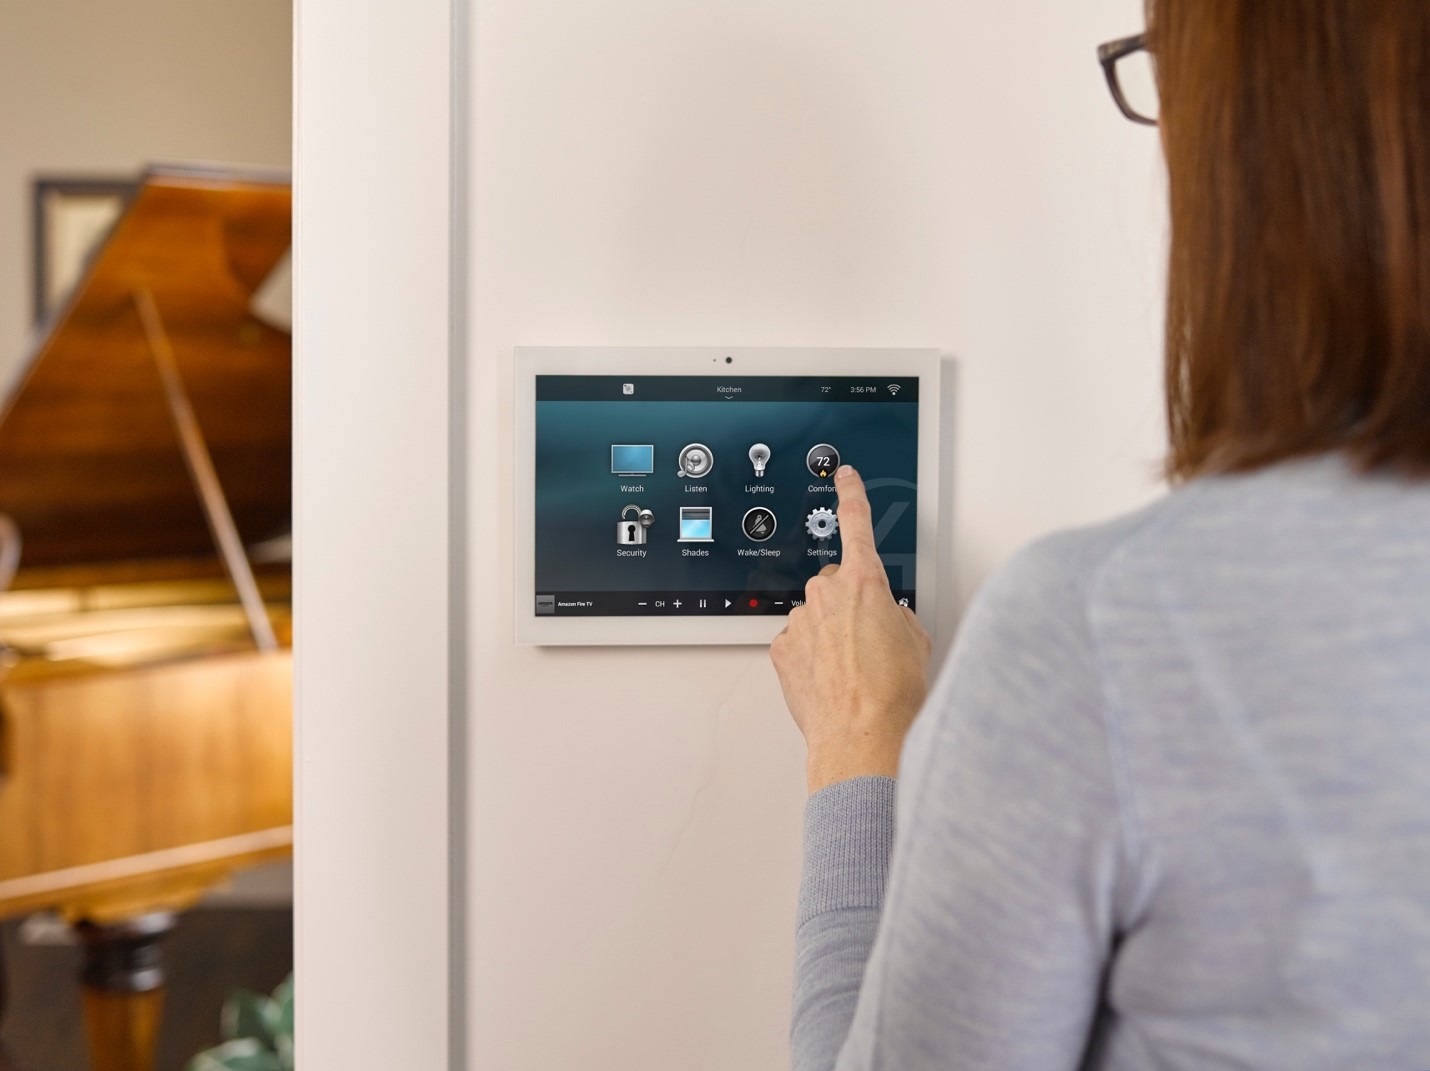 Make Your Life Easier With Control4 Home Automation